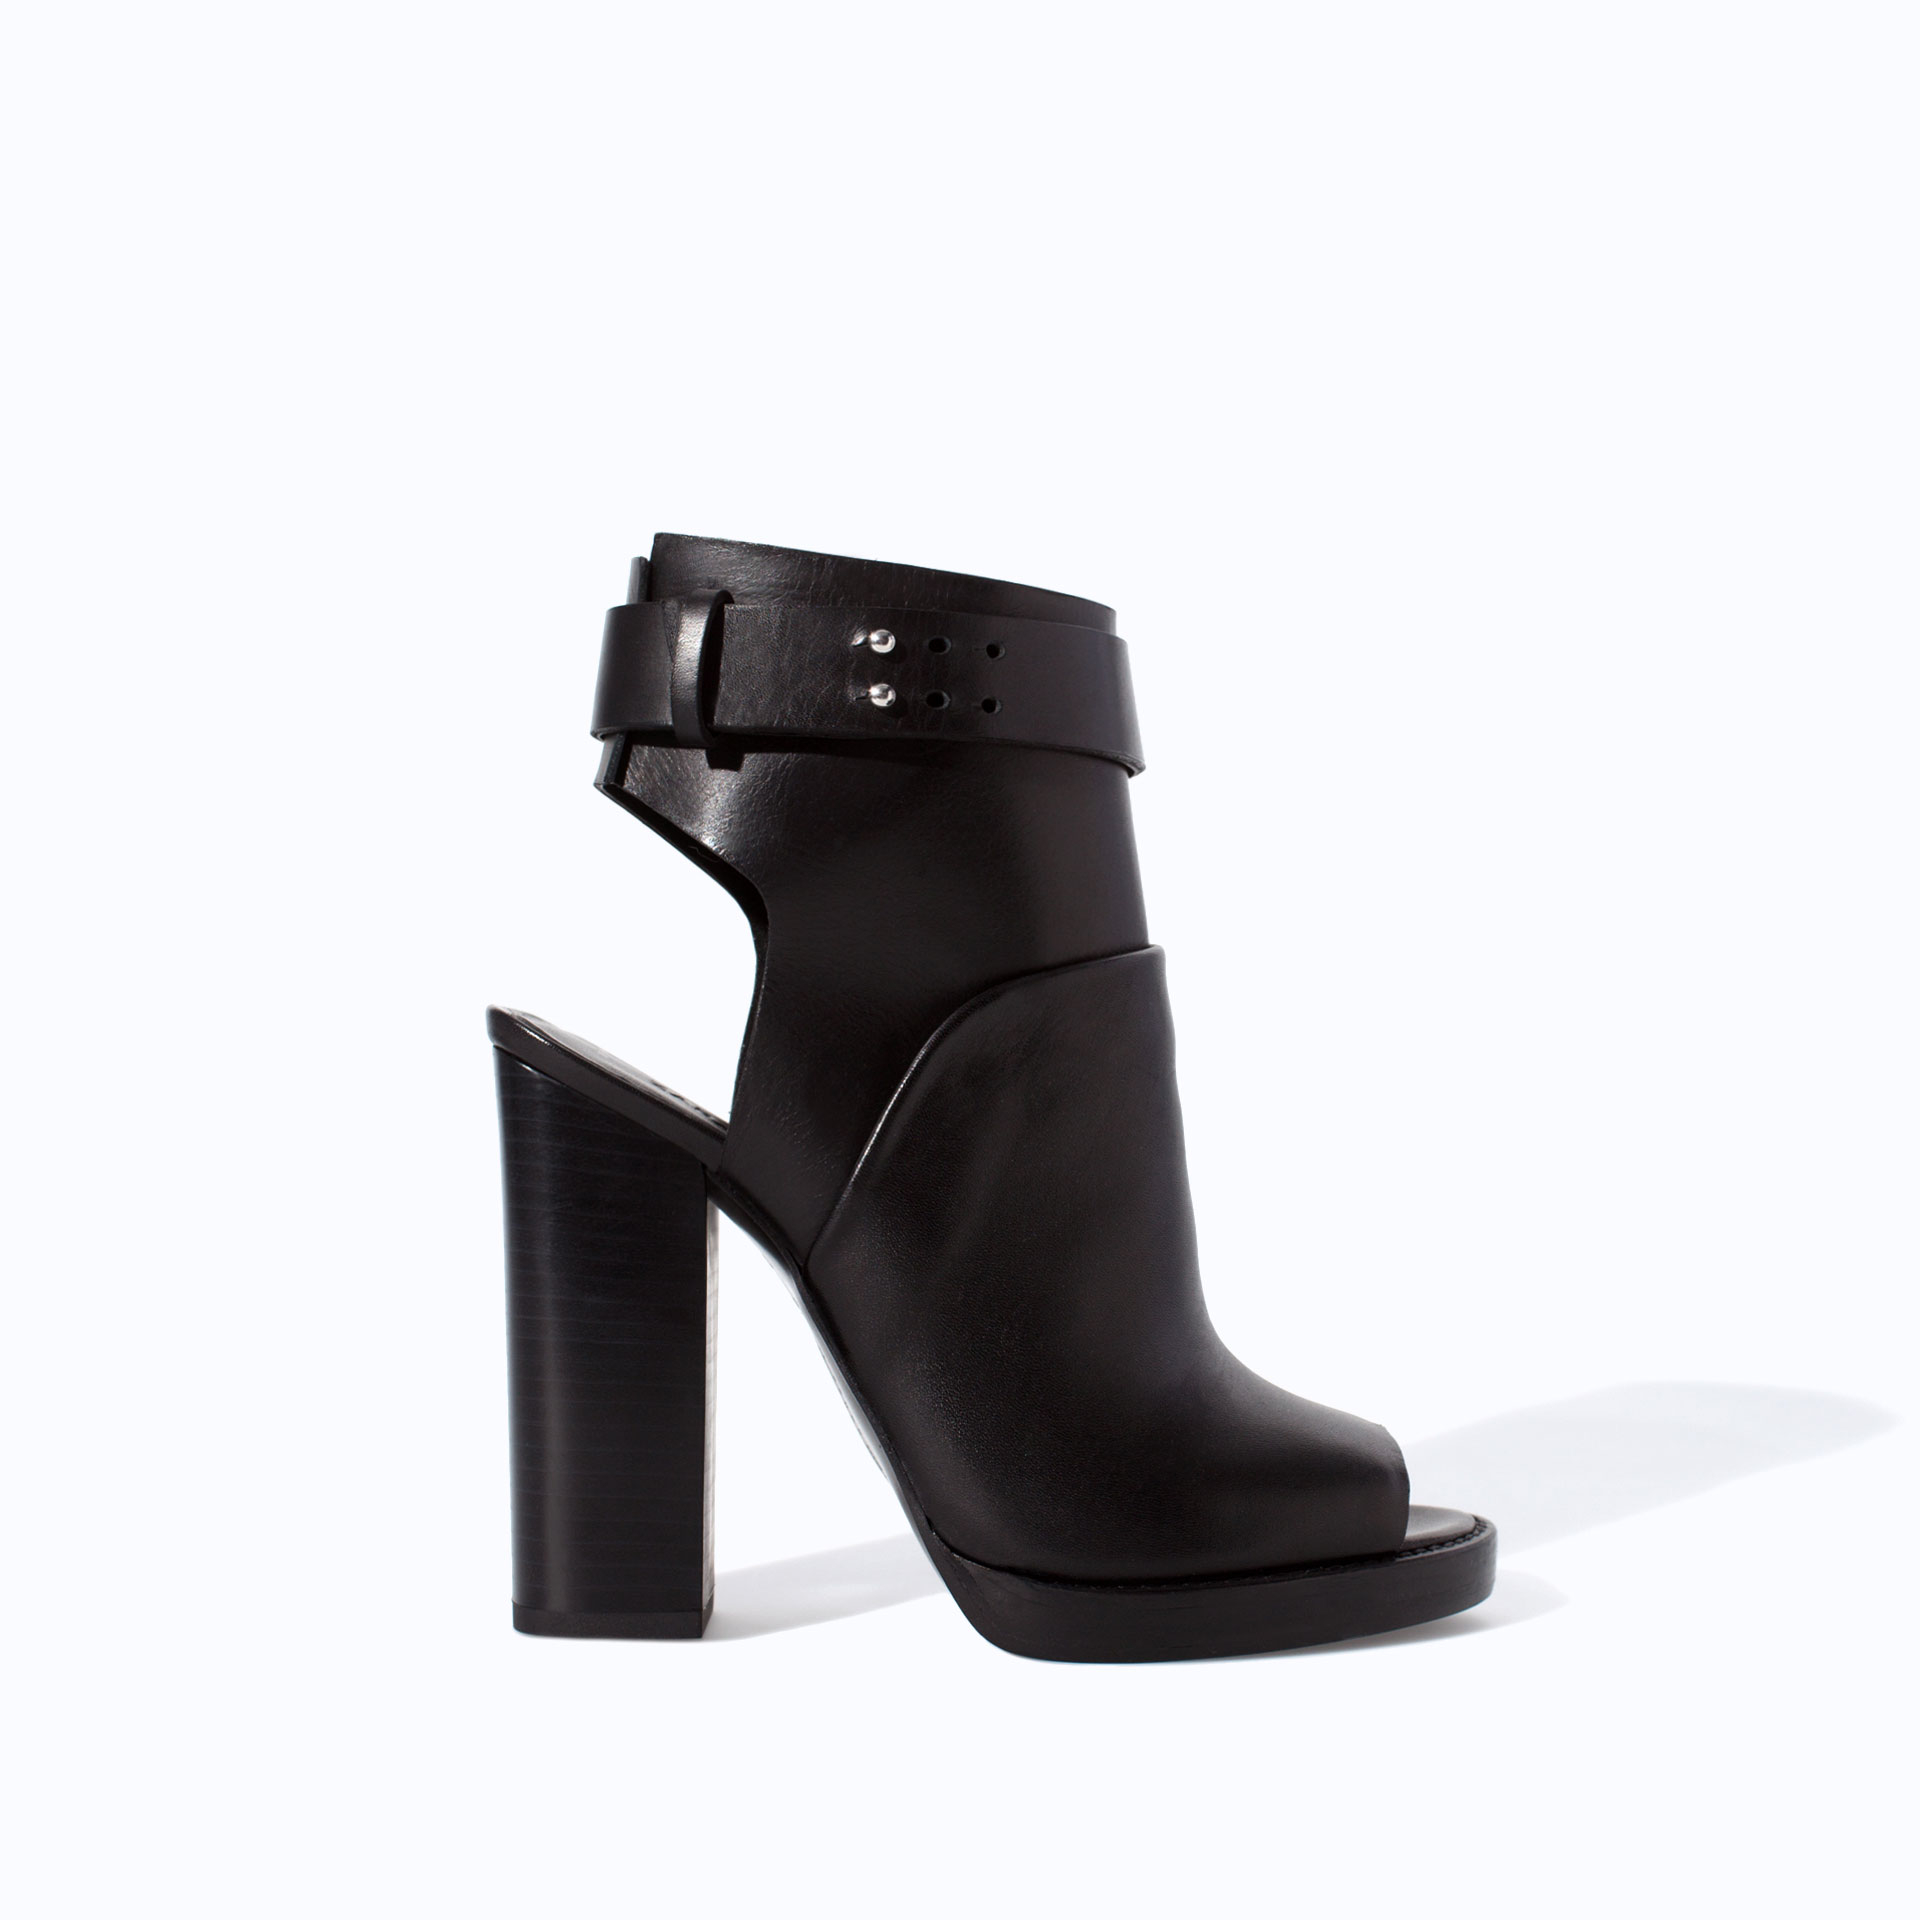 Zara Leather High Heel Peep Toe Ankle Boot in Black | Lyst